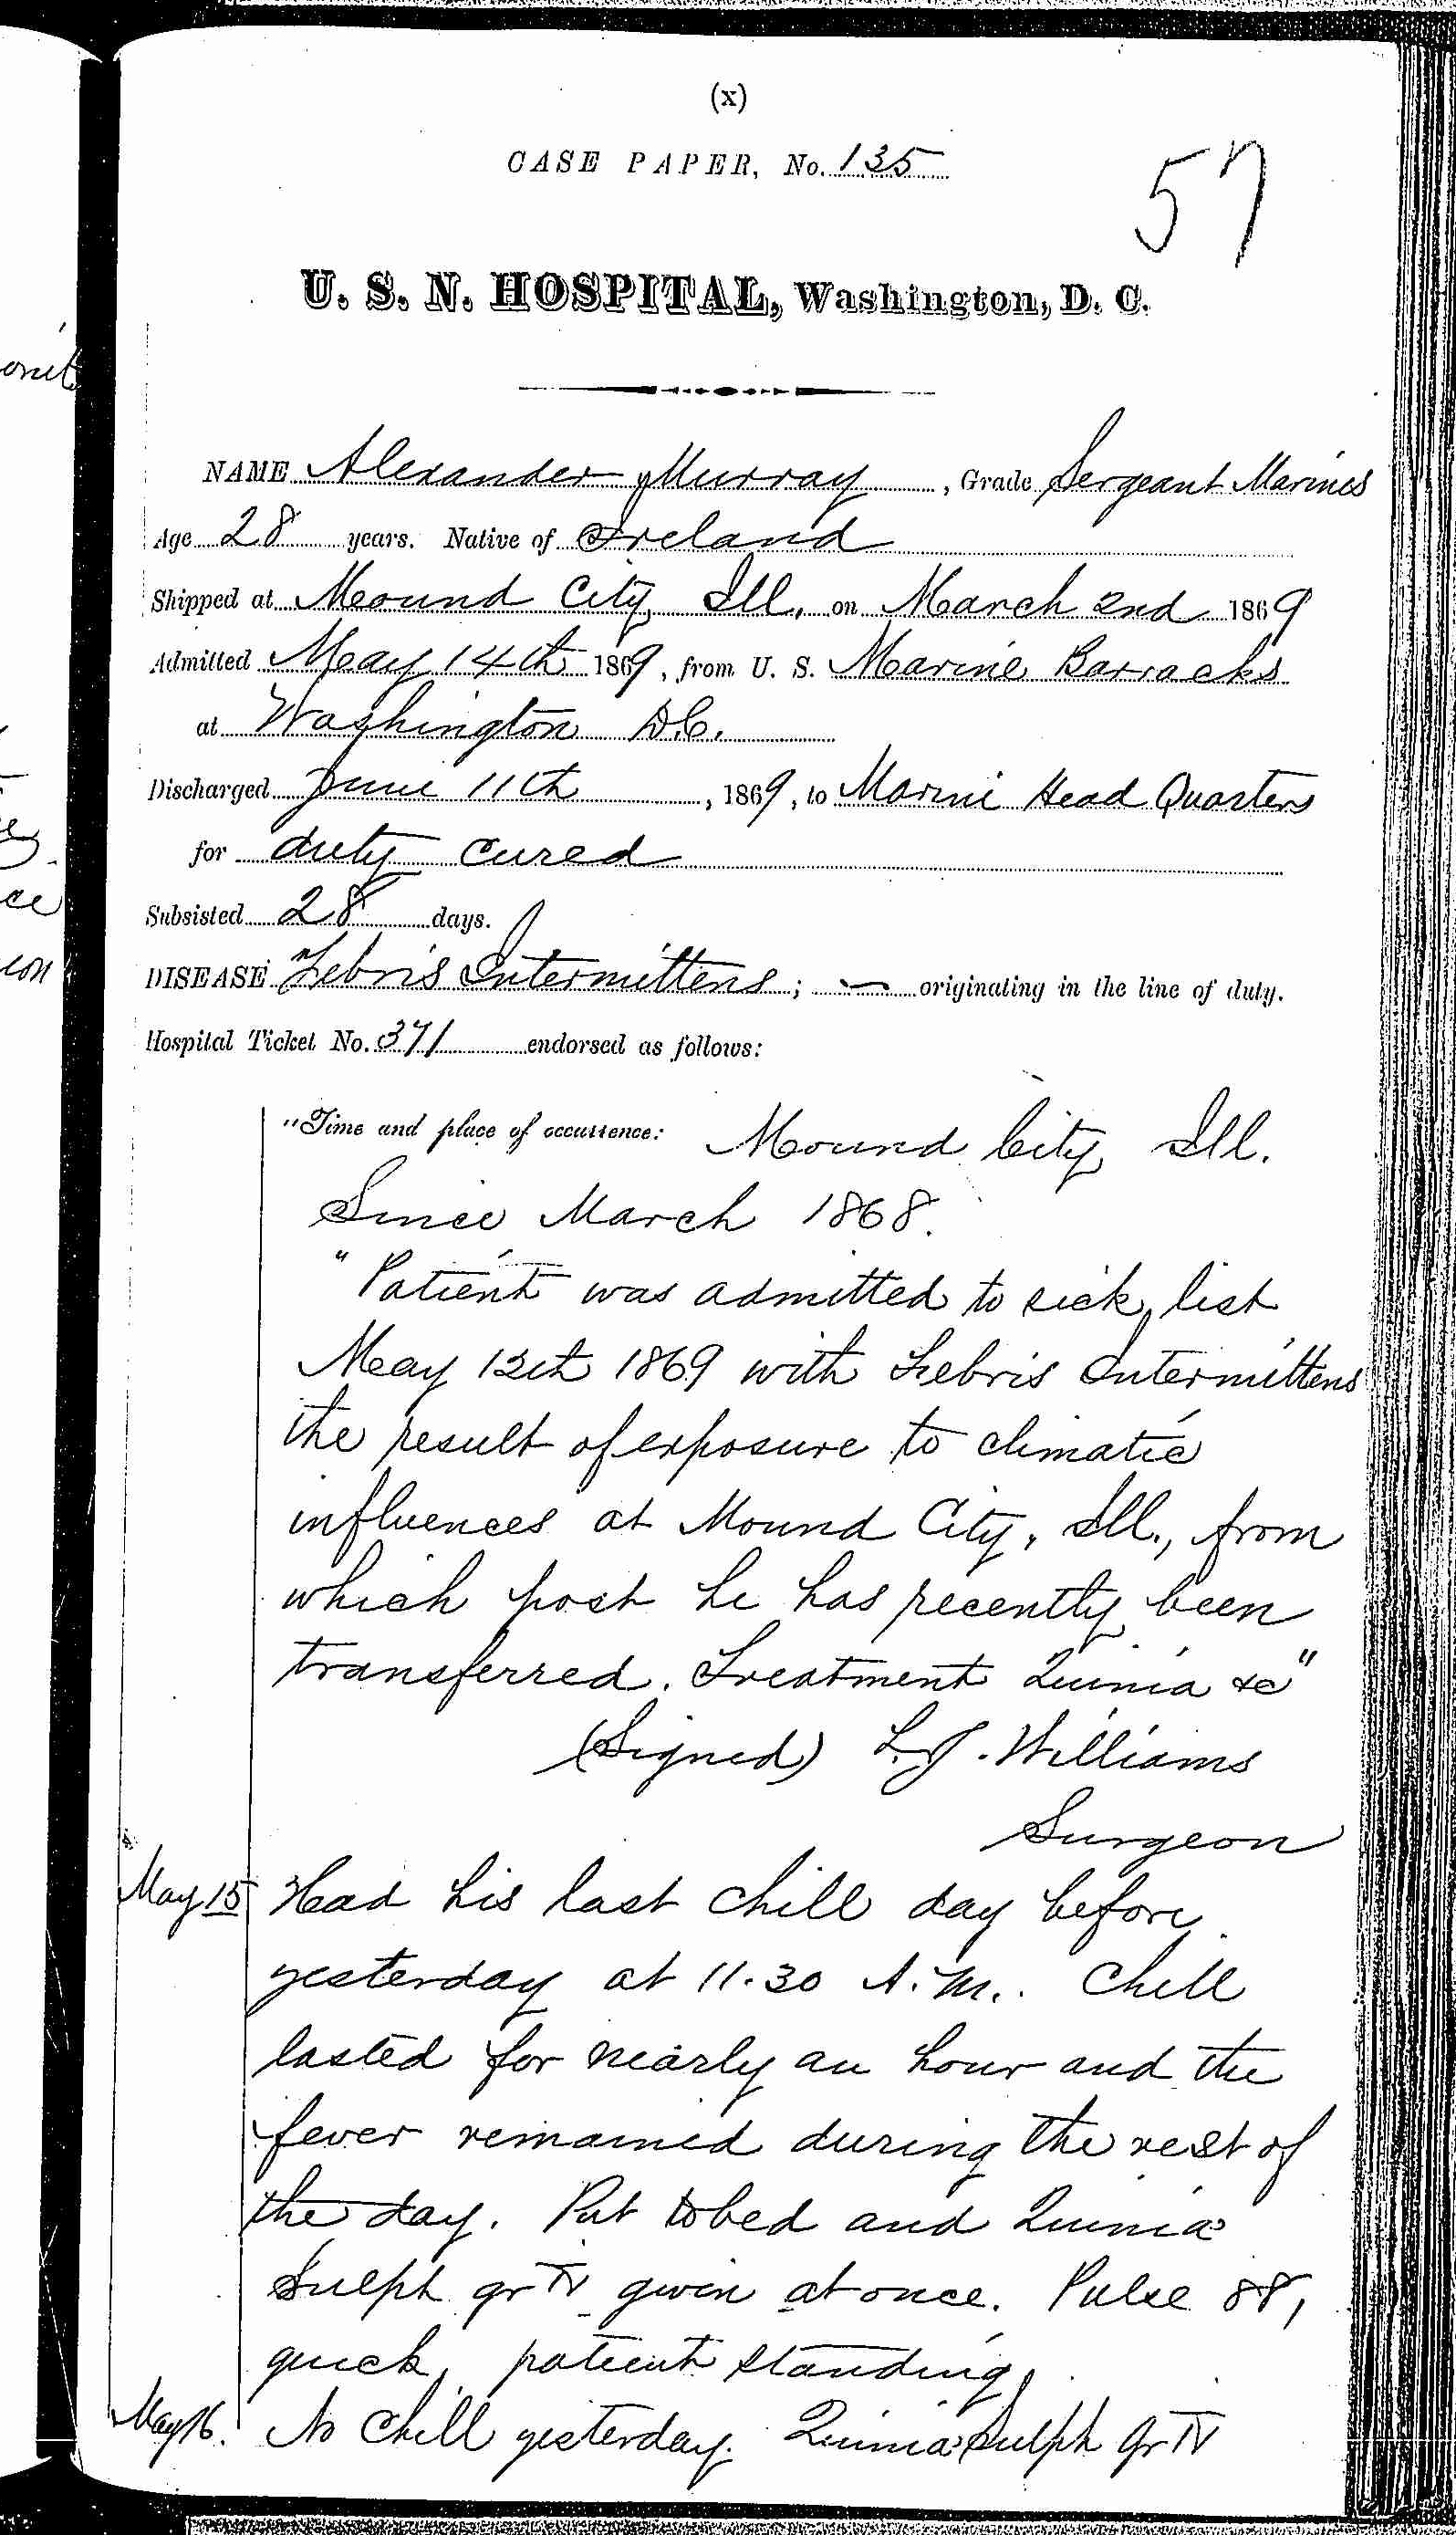 Entry for Alexander Murray (page 1 of 4) in the log Hospital Tickets and Case Papers - Naval Hospital - Washington, D.C. - 1868-69